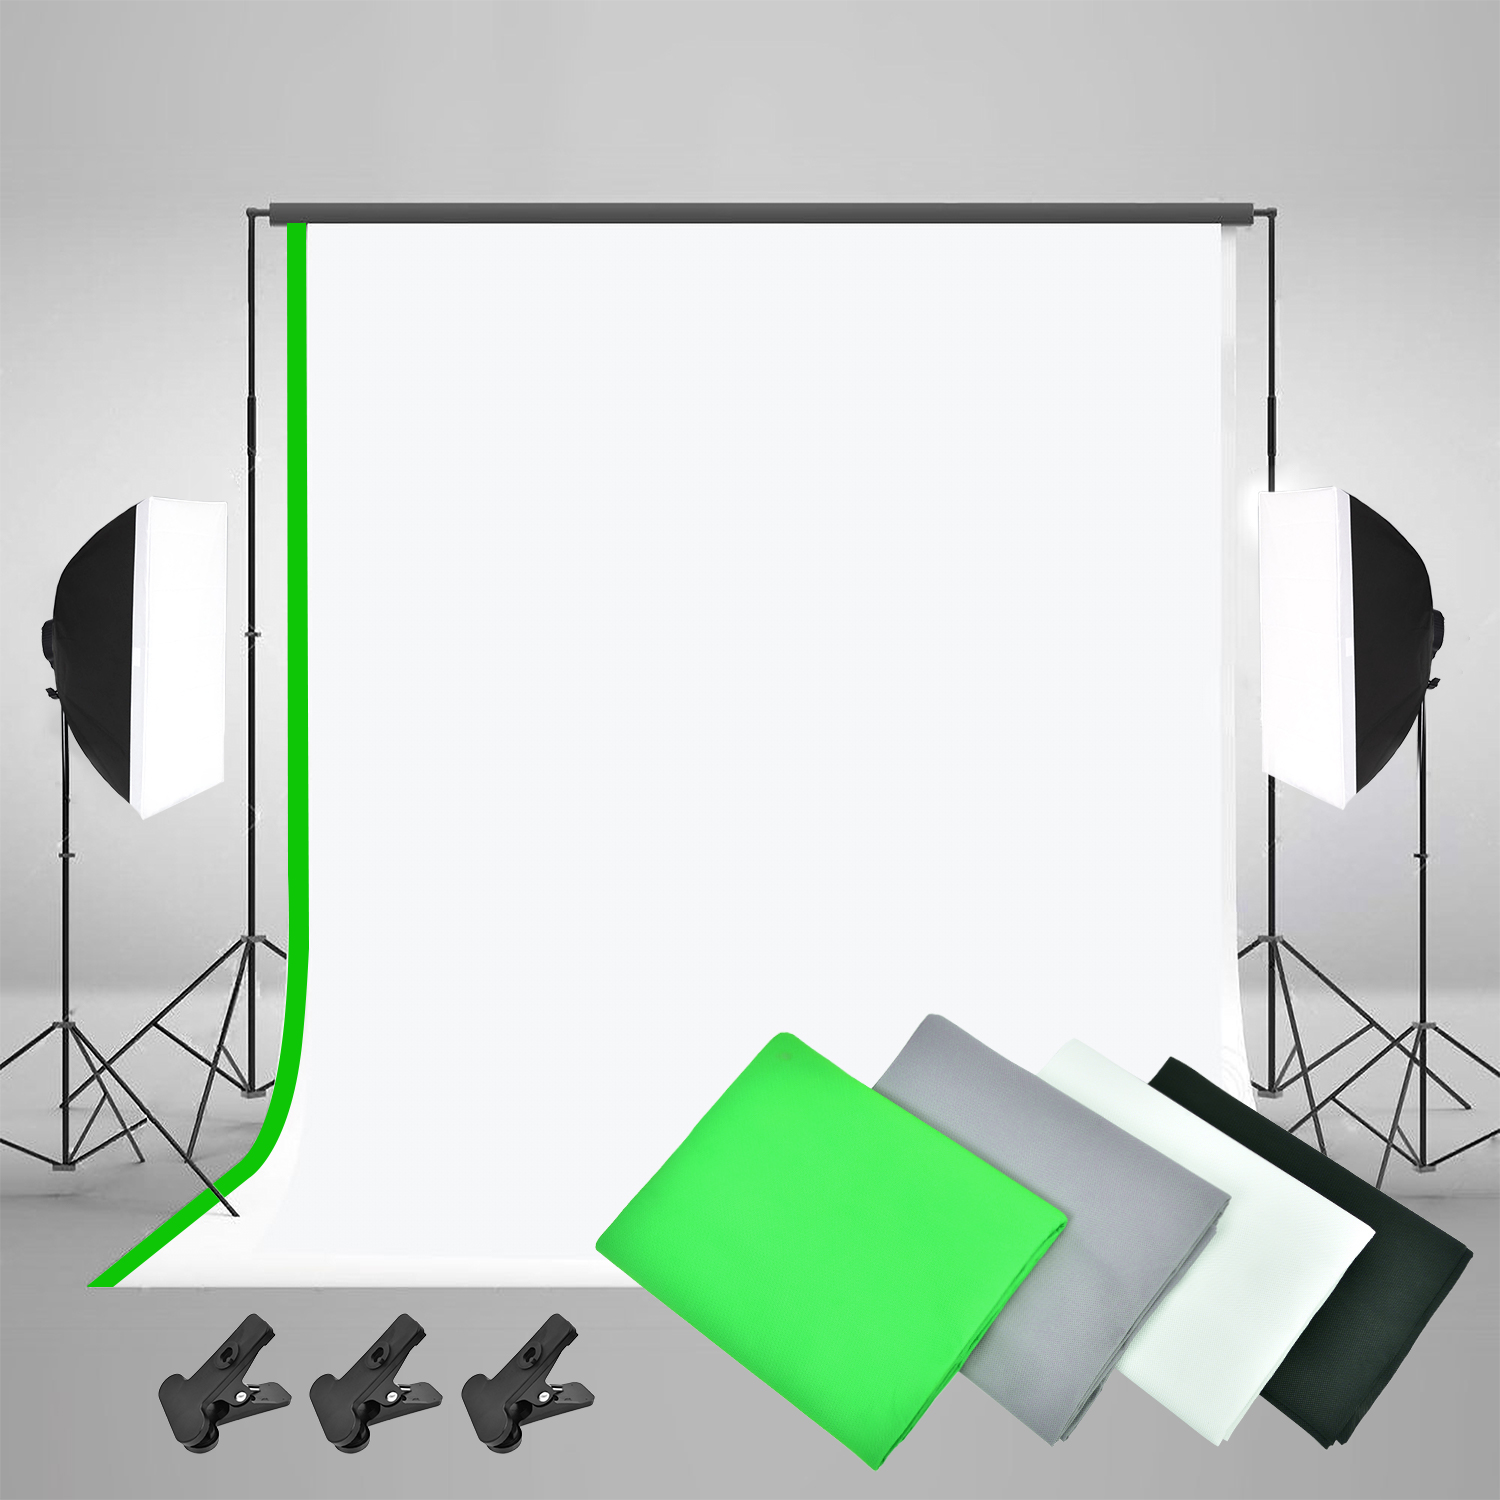 Image 2 - ZUOCHEN 3375W Photo Studio Continuous Lighting kit Softbox Boom arm 4 Background & Stand-in Photo Studio Accessories from Consumer Electronics